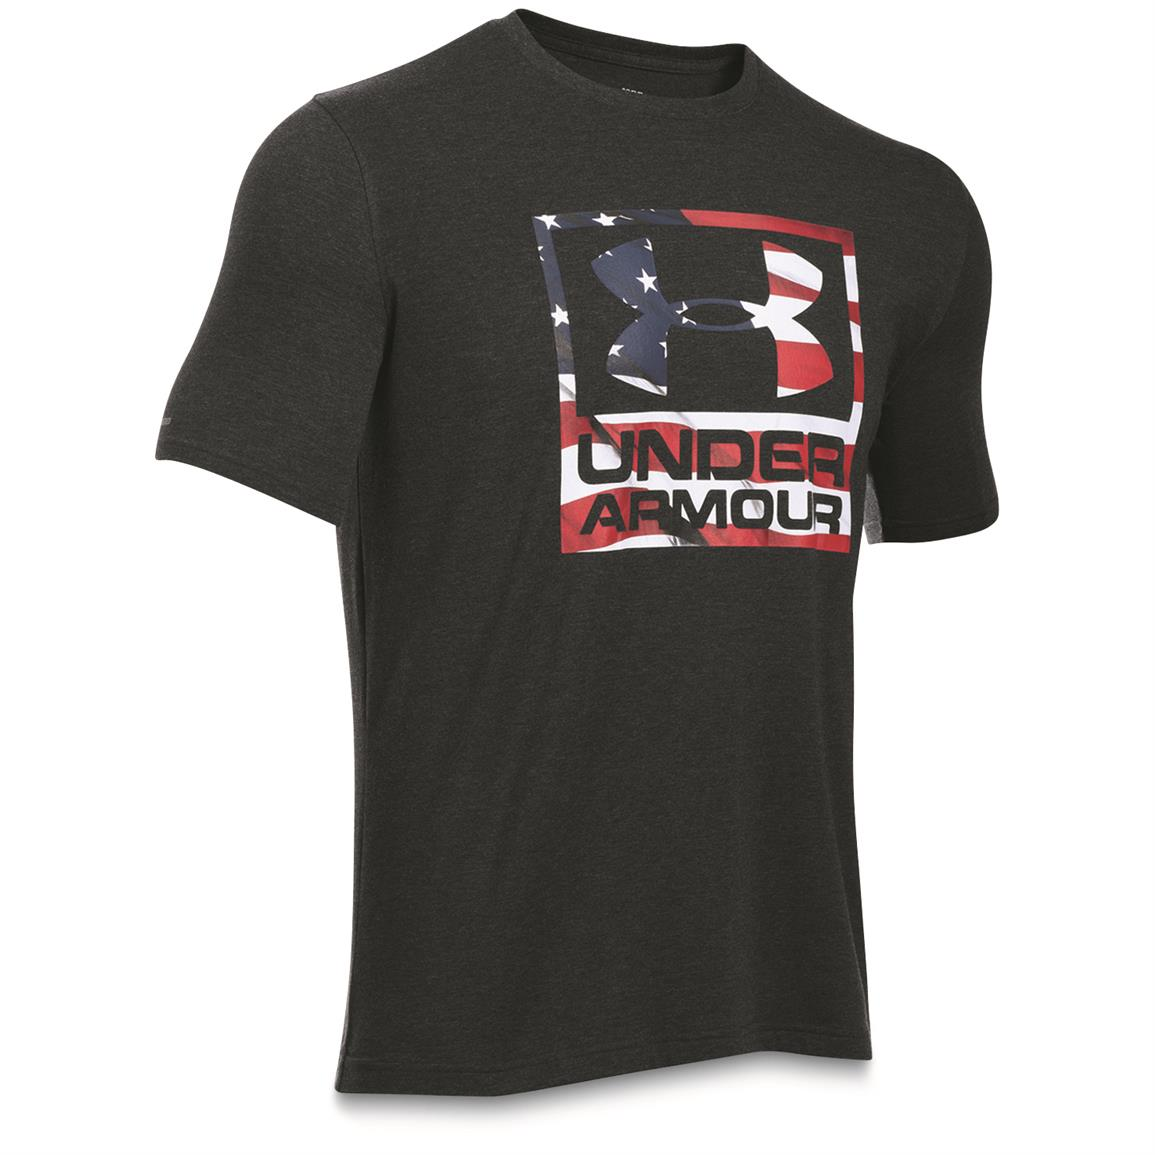 Under Armour Men's BFL Patriotic Logo Short-sleeved T-Shirt, Black / White